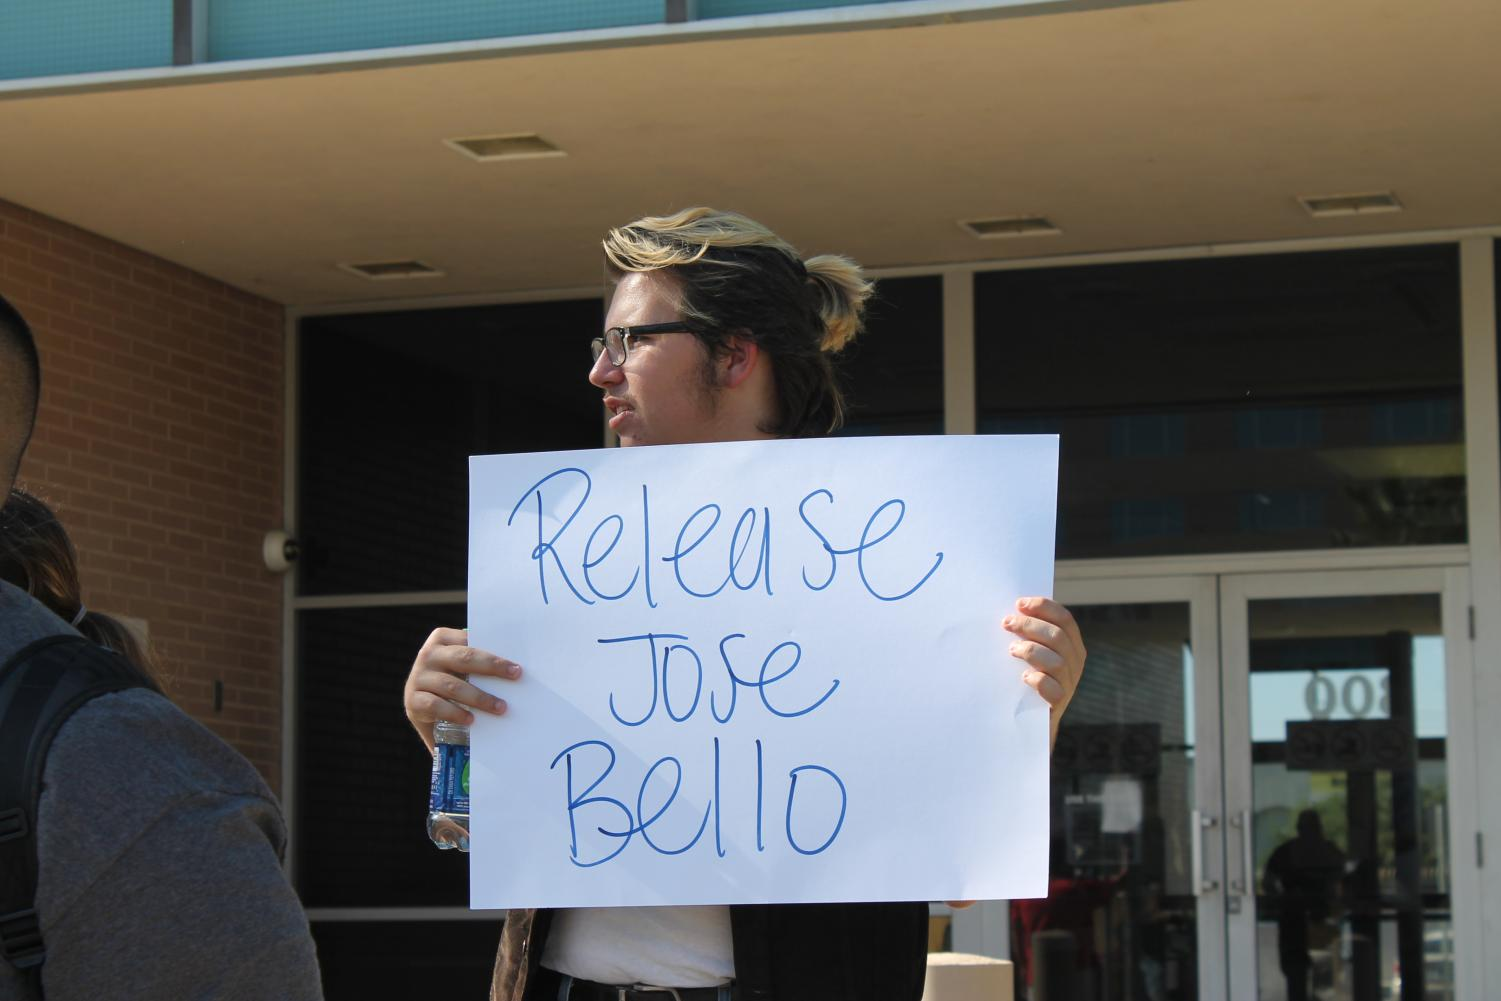 Protester, Chase Wren, holds a sign that says